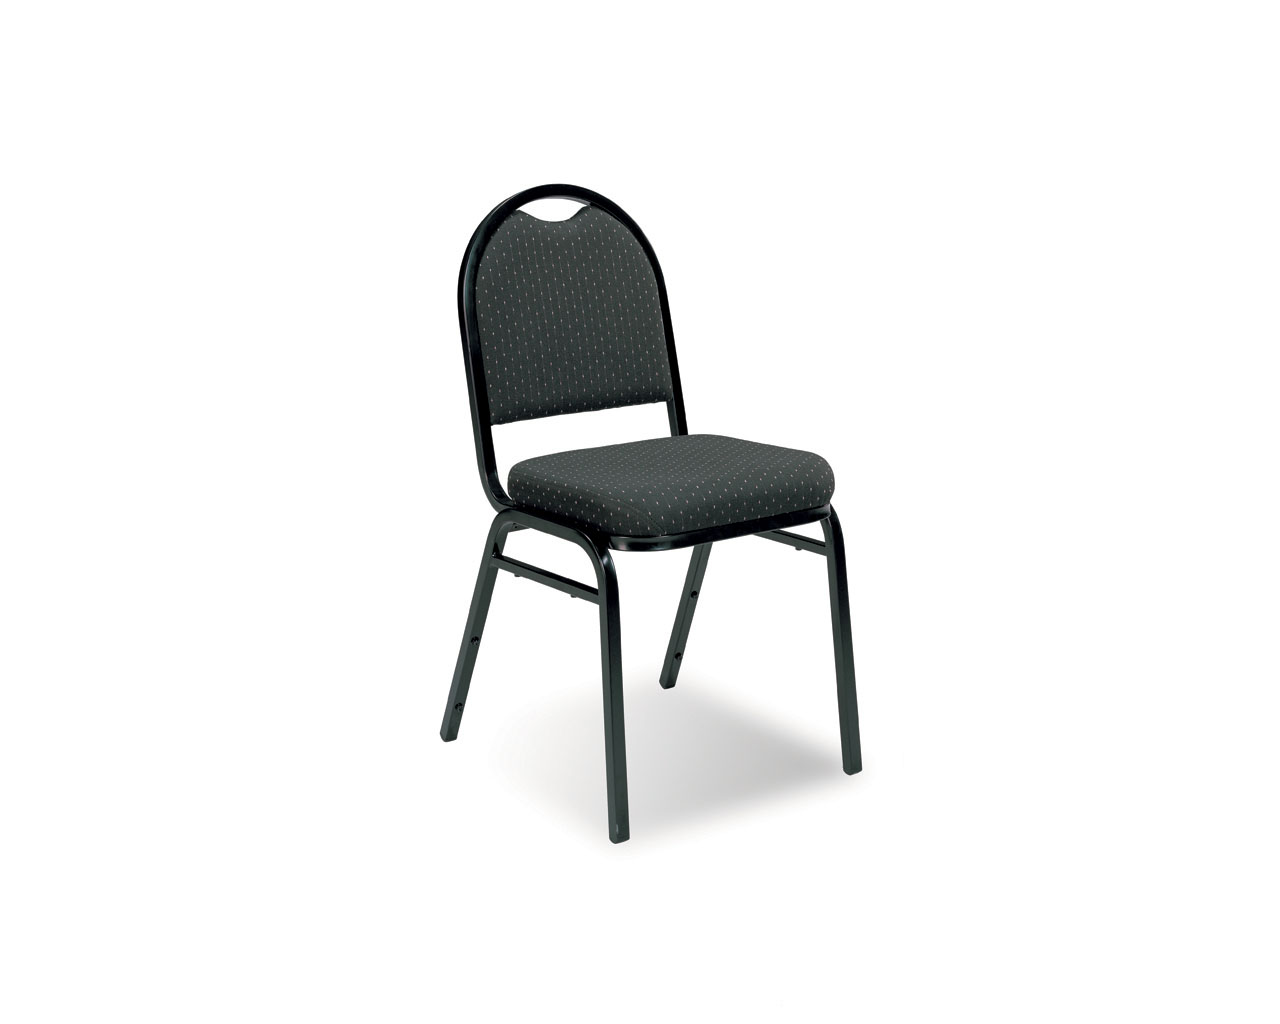 Fabric Stacking Chair Source Office Furniture Office Chairs